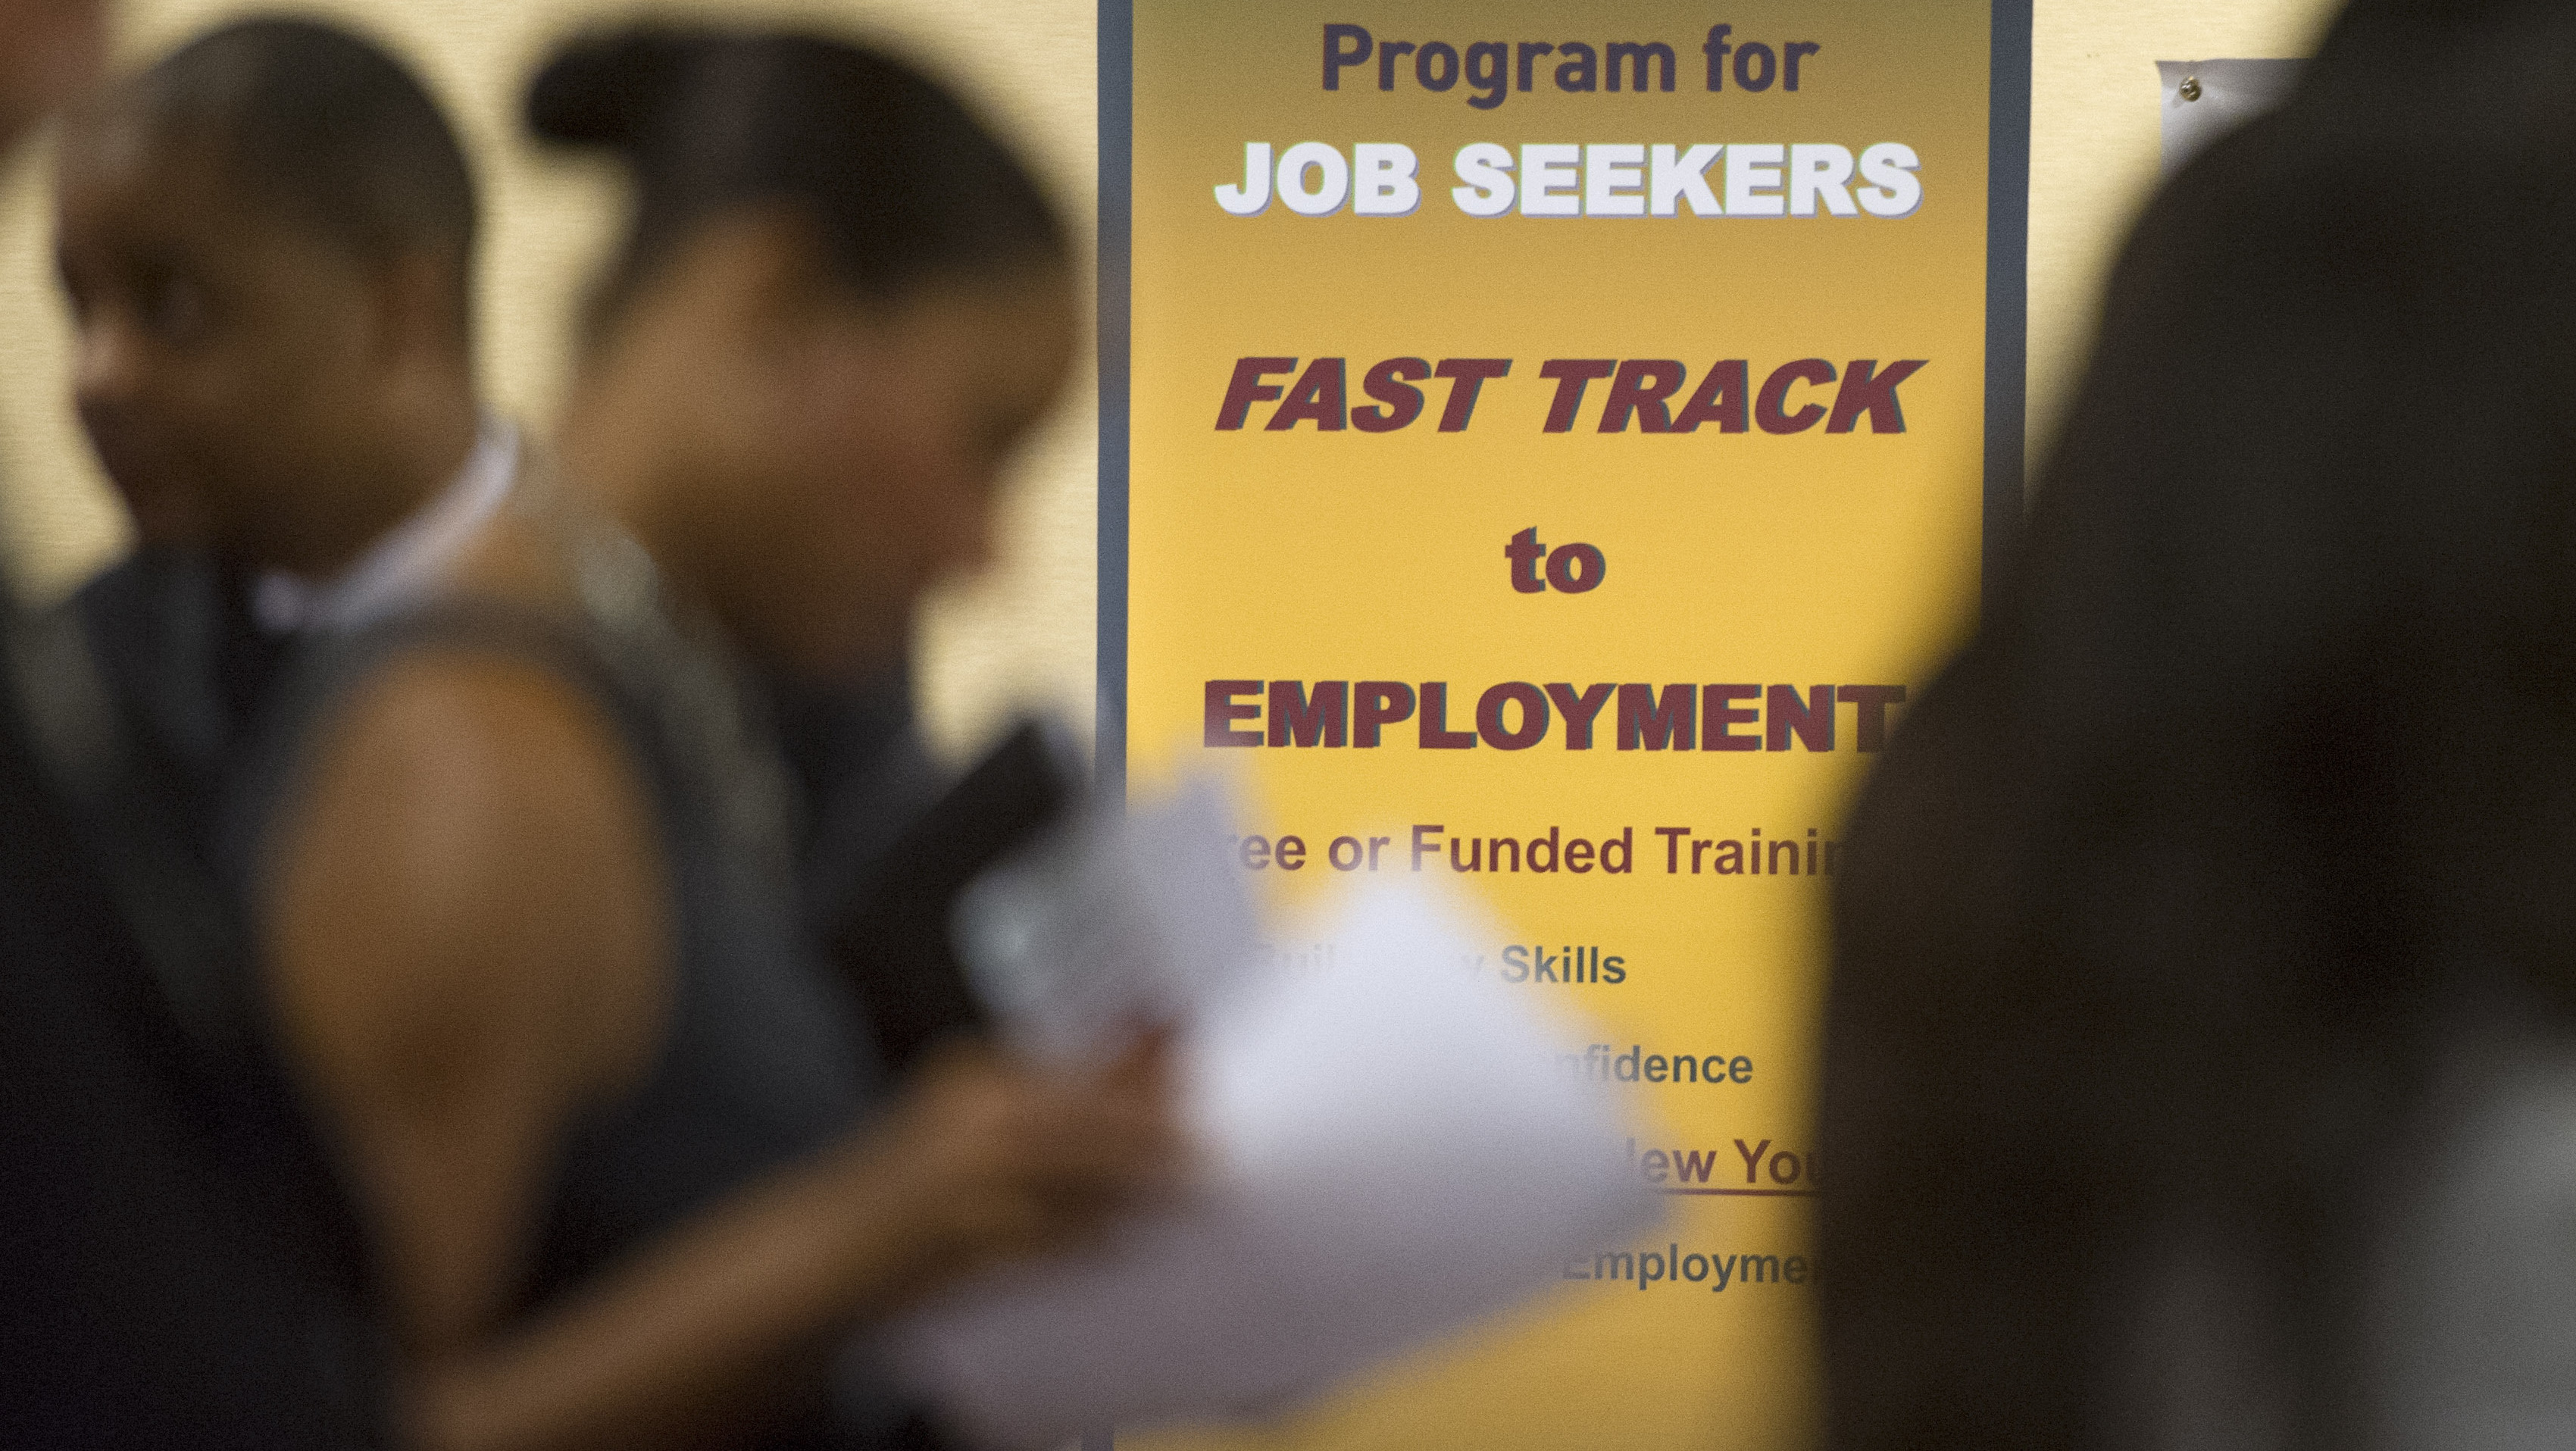 For The Unemployed, Ideas To Help Bridge The Gap To Work